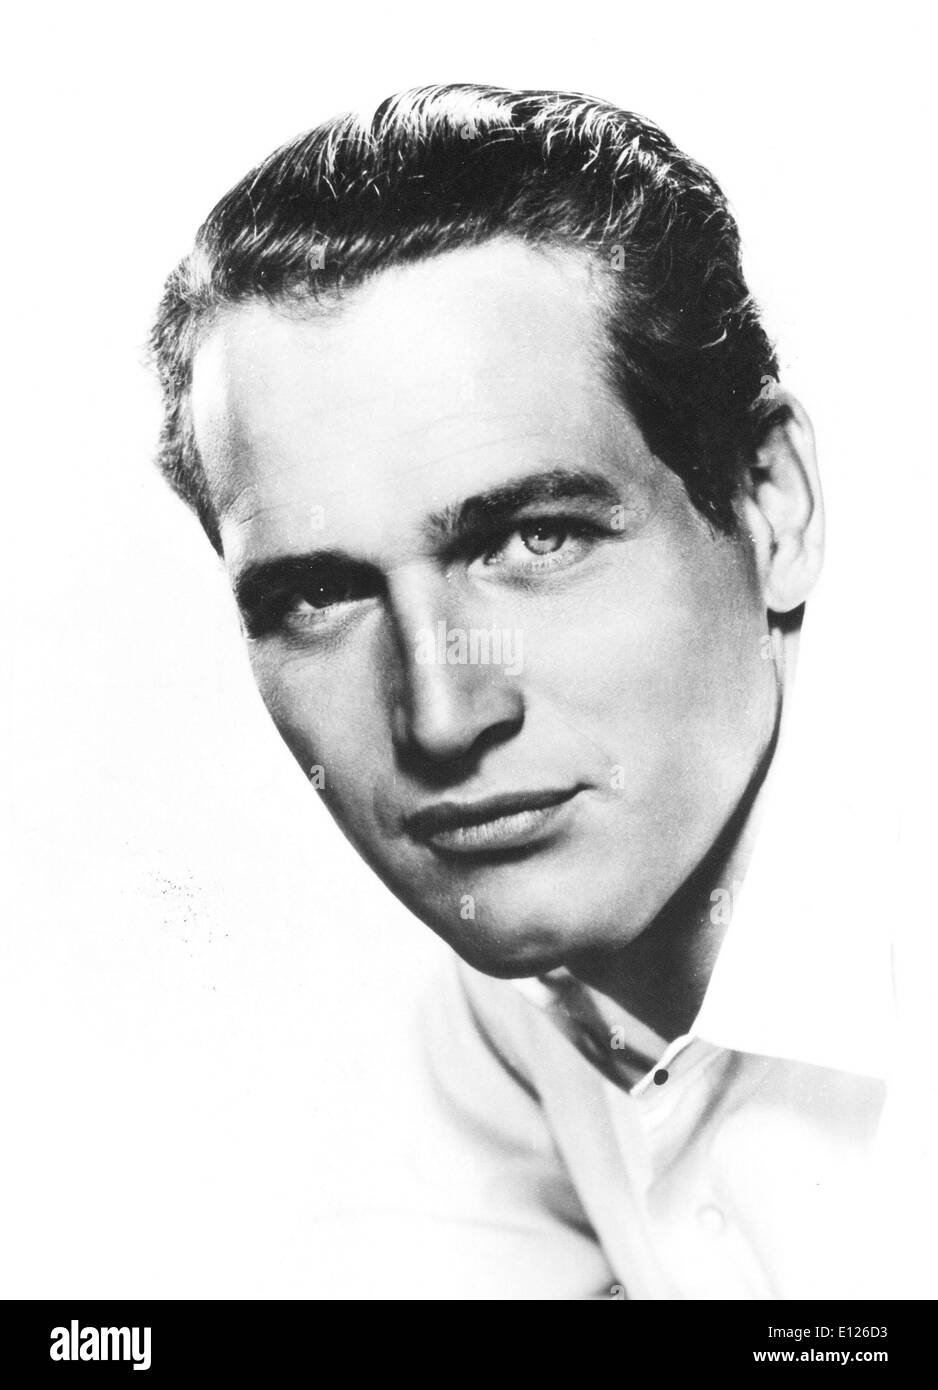 Sep 27, 2008 - Westport, Connecticut - PAUL NEWMAN (January 26, 1925 - September 26, 2008), the legendary movie star and irreverent cultural icon who created a model philanthropy fueled by profits from a salad dressing that became nearly as famous as he was, has died. He was 83. Newman died Friday at his home near Westport, Conn., after a long battle with cancer, publicist Jeff Sanderson said. PICTURED - Los Angeles, CA, USA - In a business where public scandal and bad-boy behavior are the rule rather than the exception, PAUL NEWMAN is as much a hero offscreen as on - Stock Image